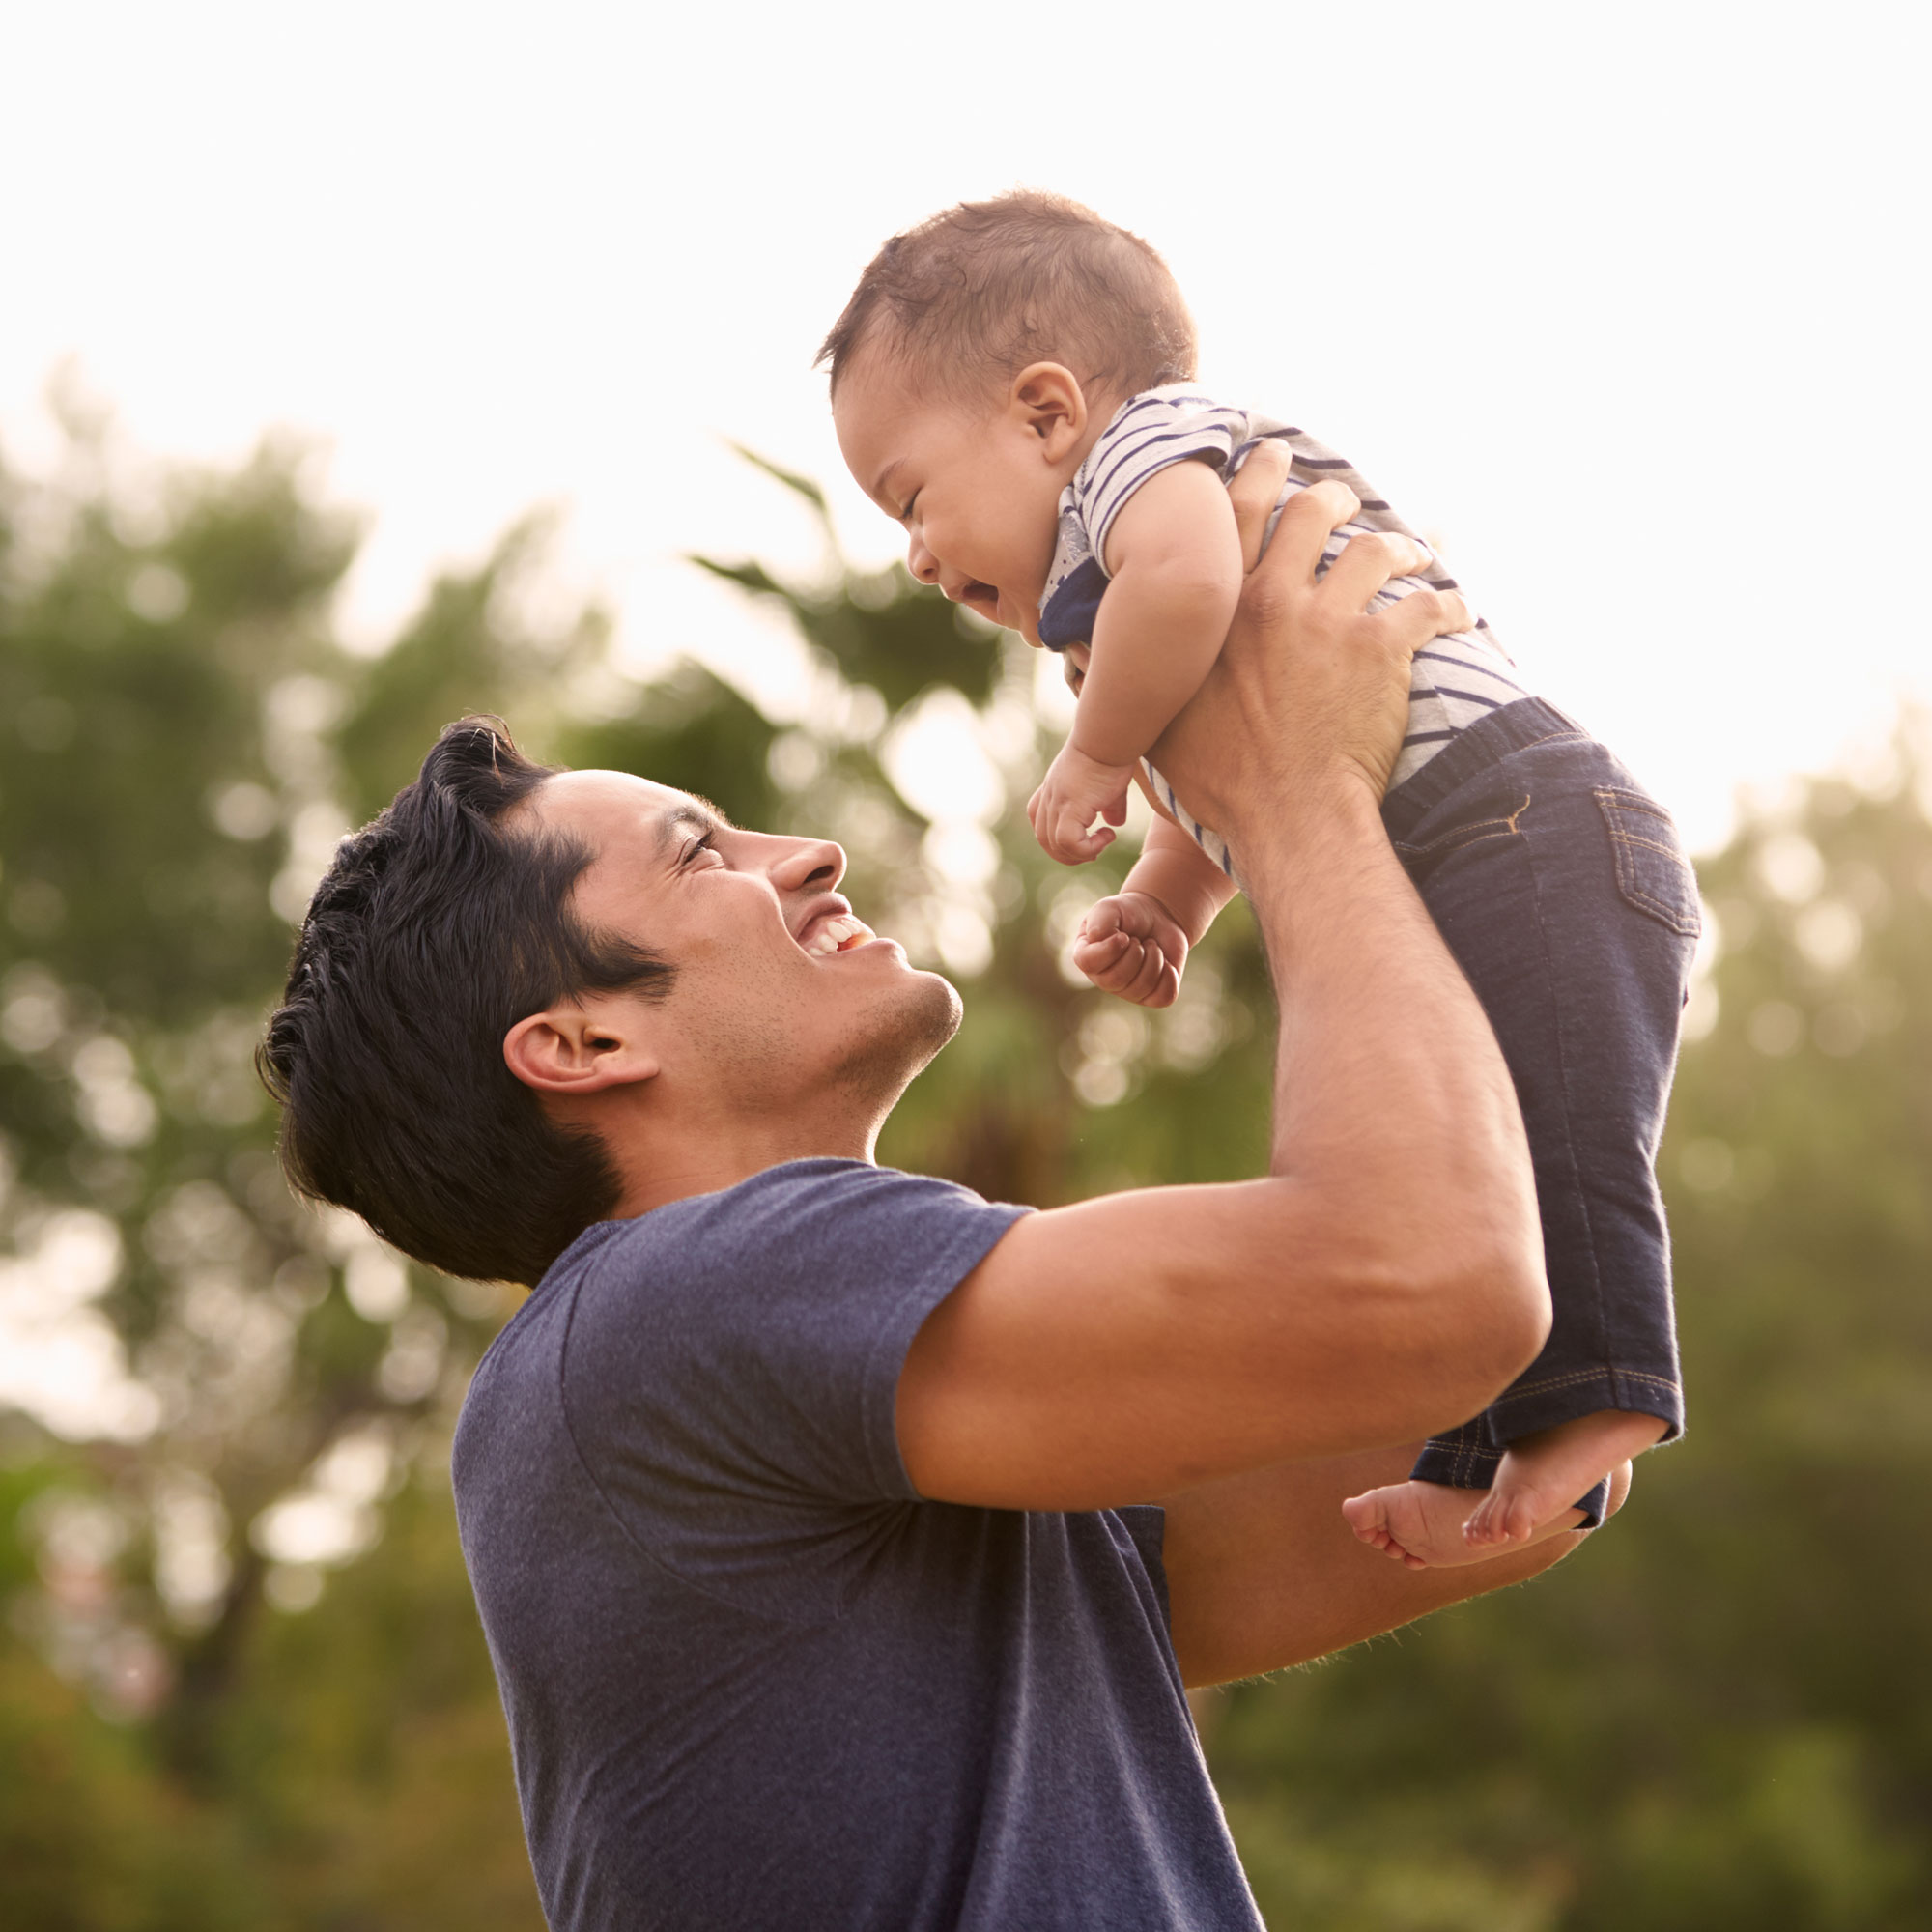 a smiling dad holds his happy baby up in the air